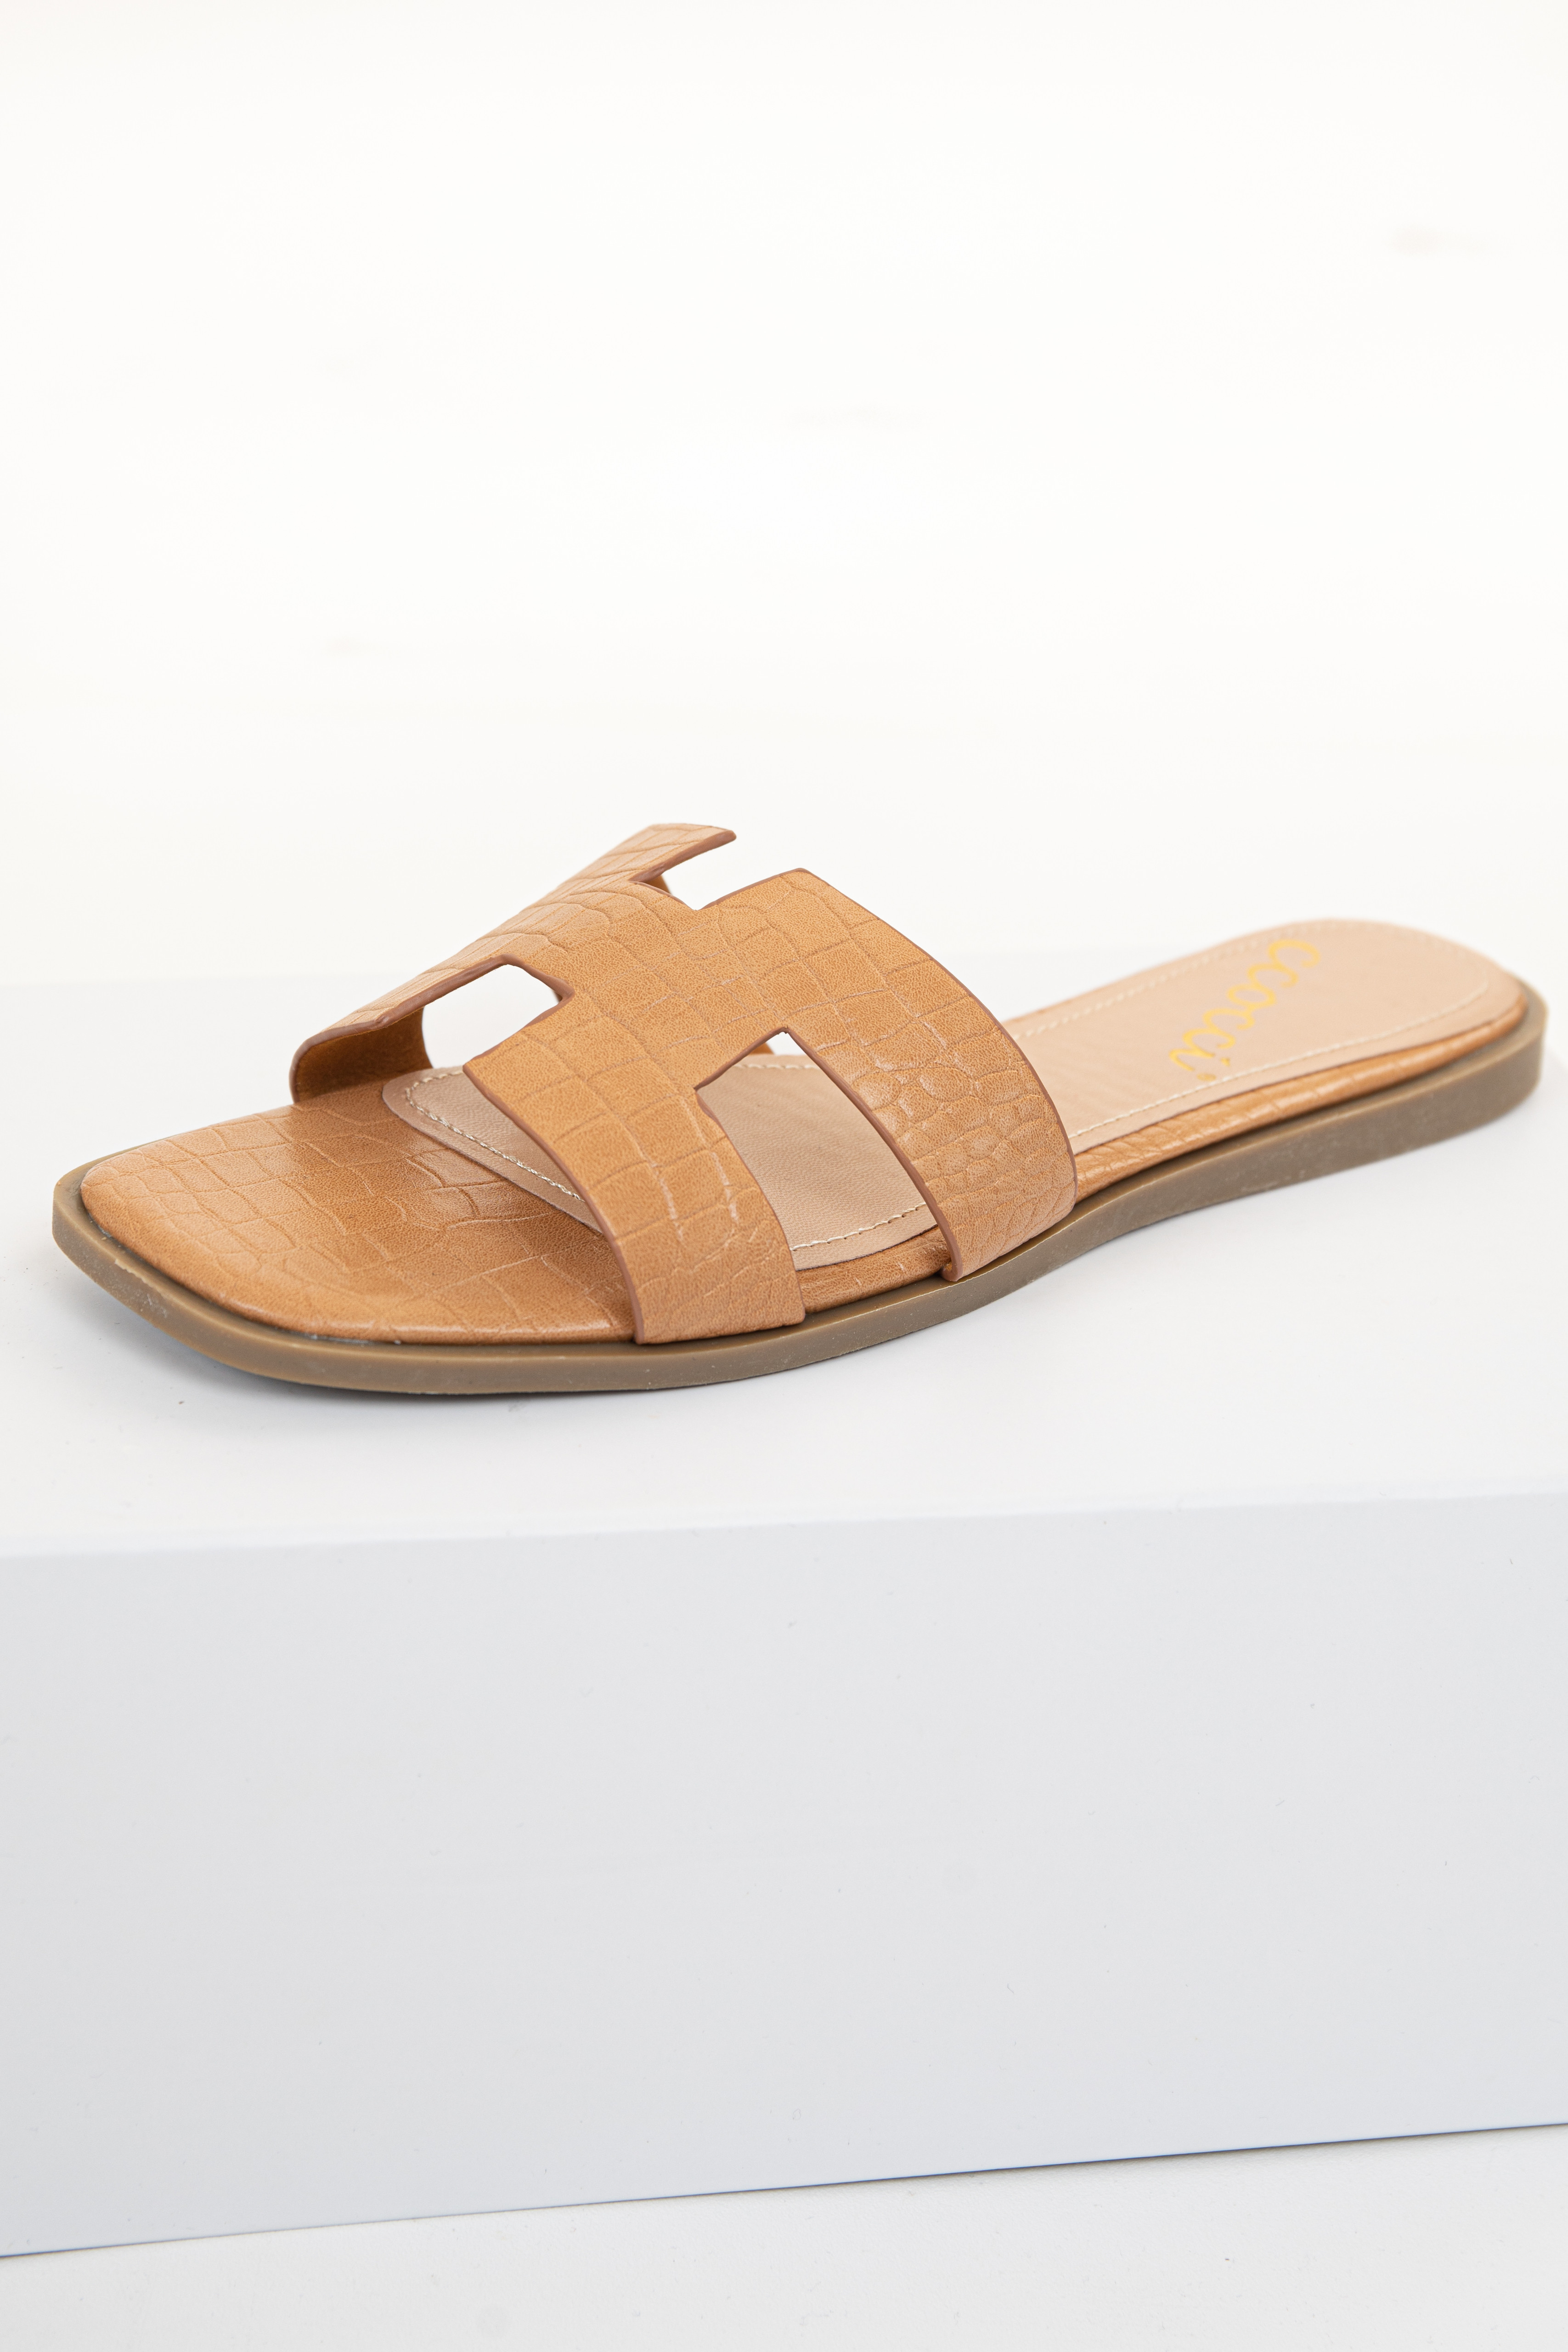 Toffee Crocodile Texture Slip On Sandal with Cutout Details